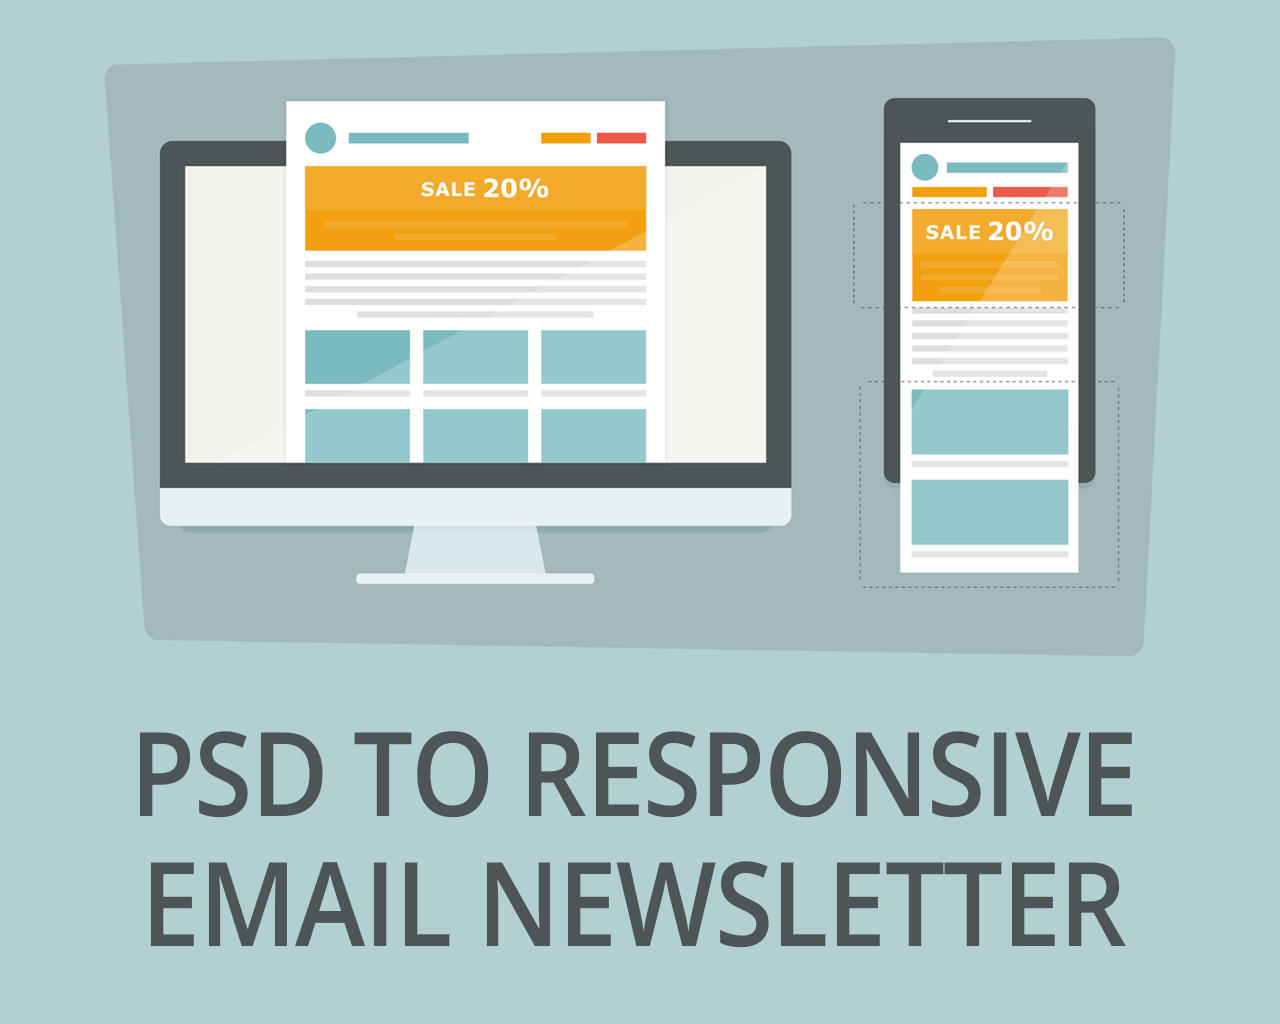 PSD to Responsive E-mail Newsletter by madridnyc - 107483